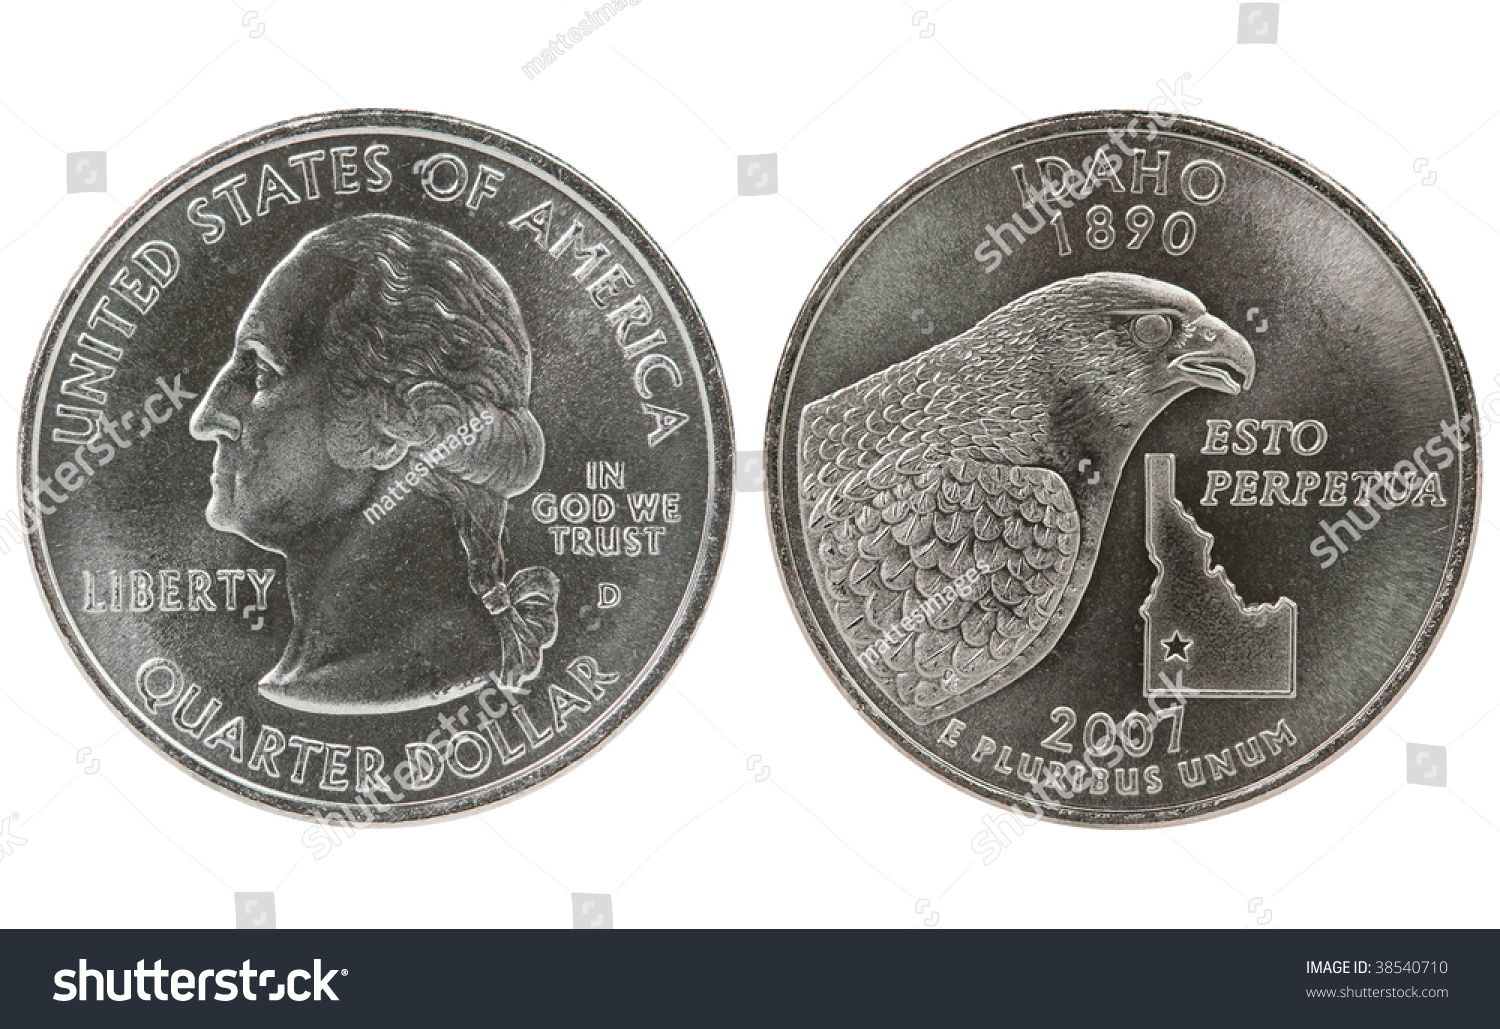 Idaho State Quarter Coin Both Sides Front And Back Heads And Tails Obverse And Reverse